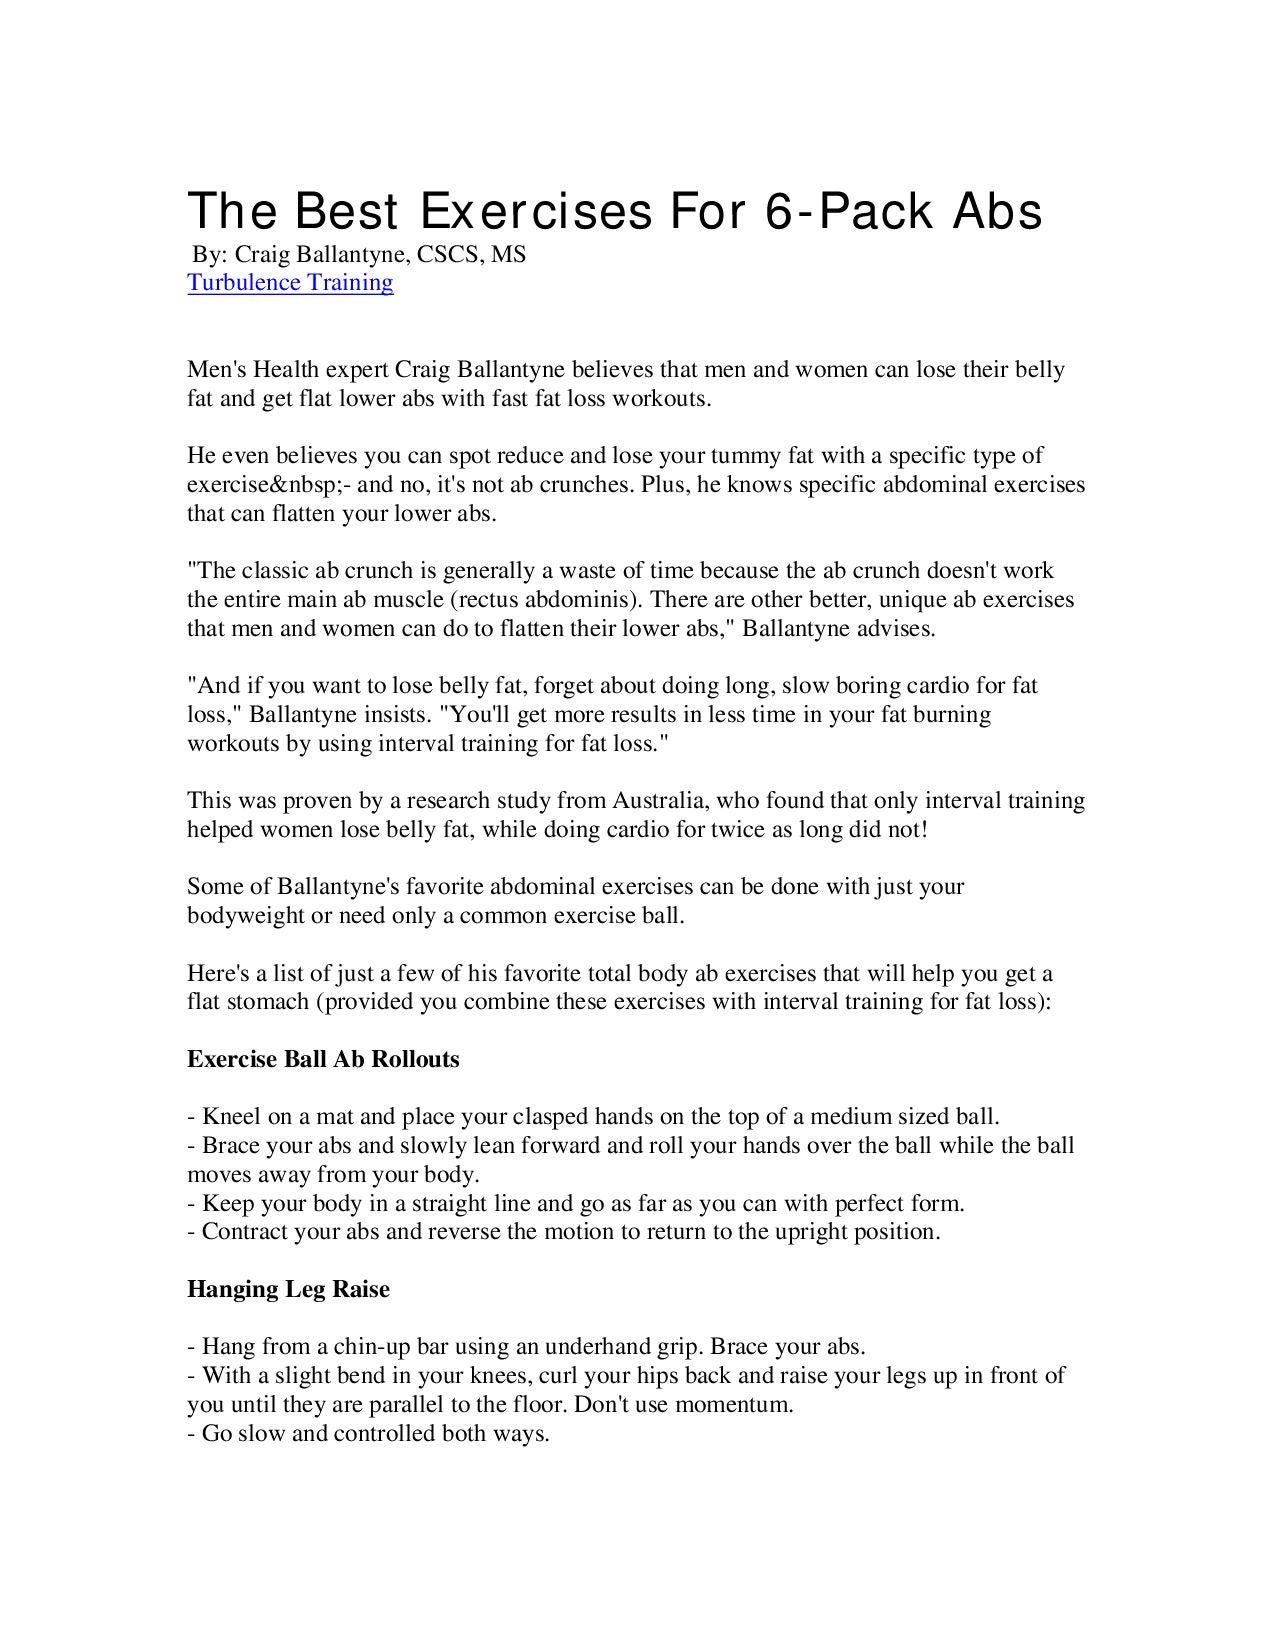 The Best Exercises For 6-Pack Abs by james thompson - issuu